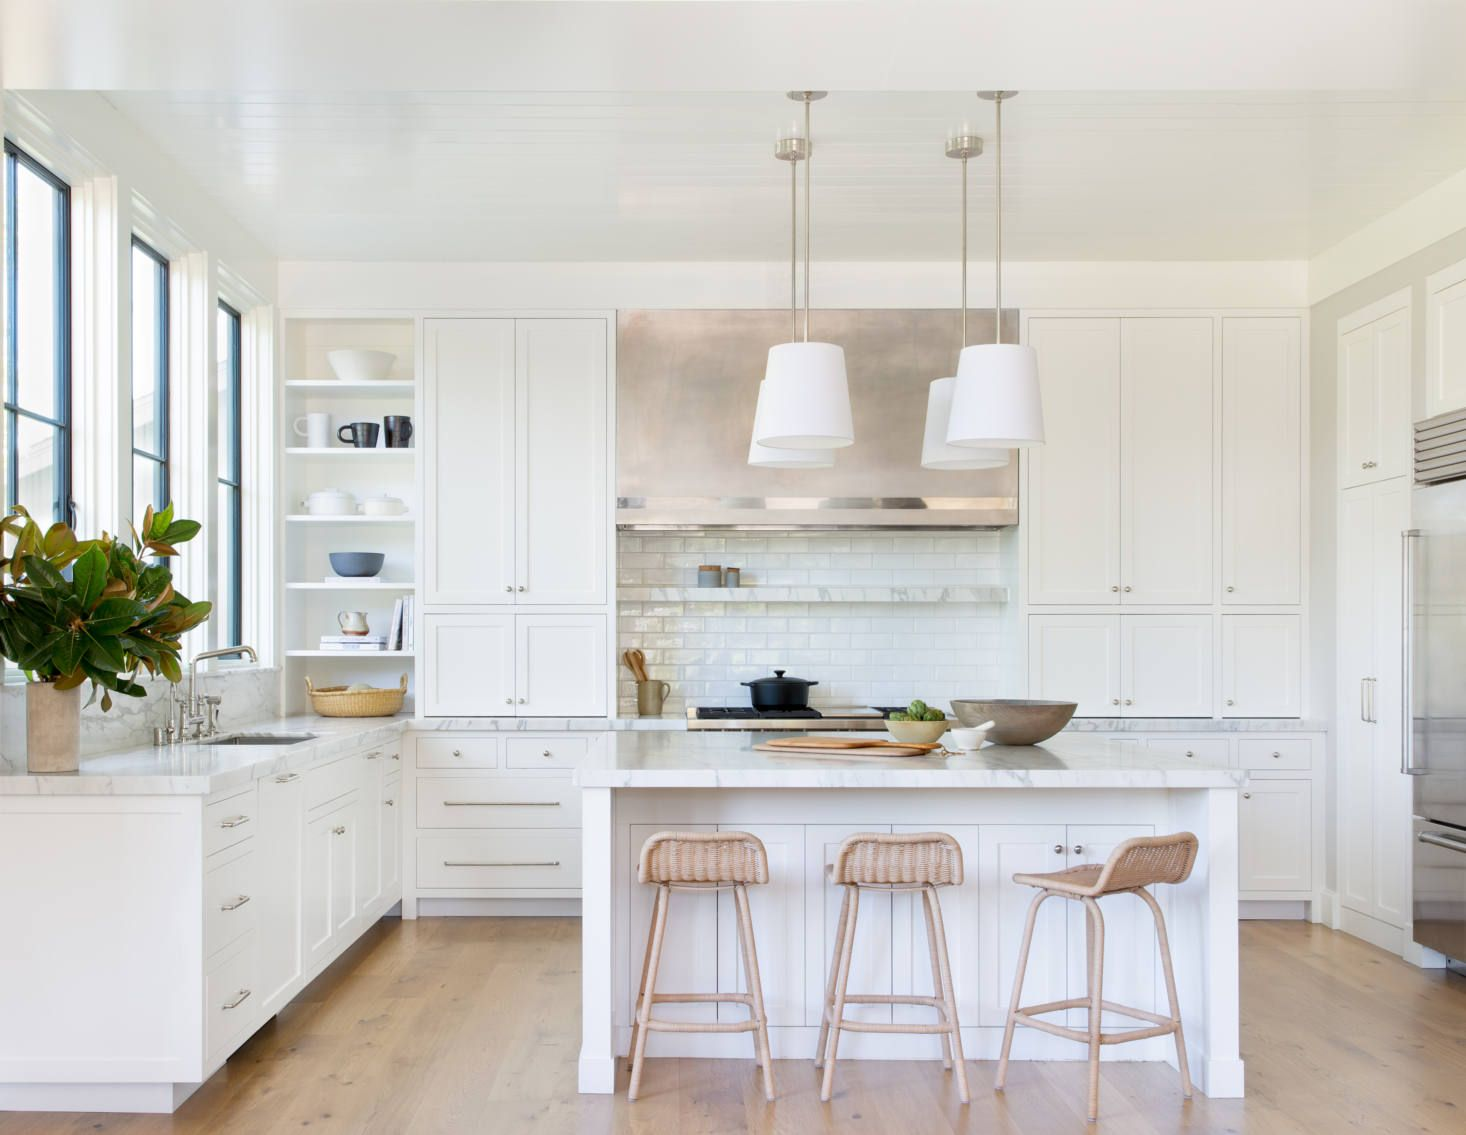 Mill Valley Makeover A Historic California House Remodel With Traditional Modern Flair All White Kitchen Contemporary Kitchen Interior Design Kitchen